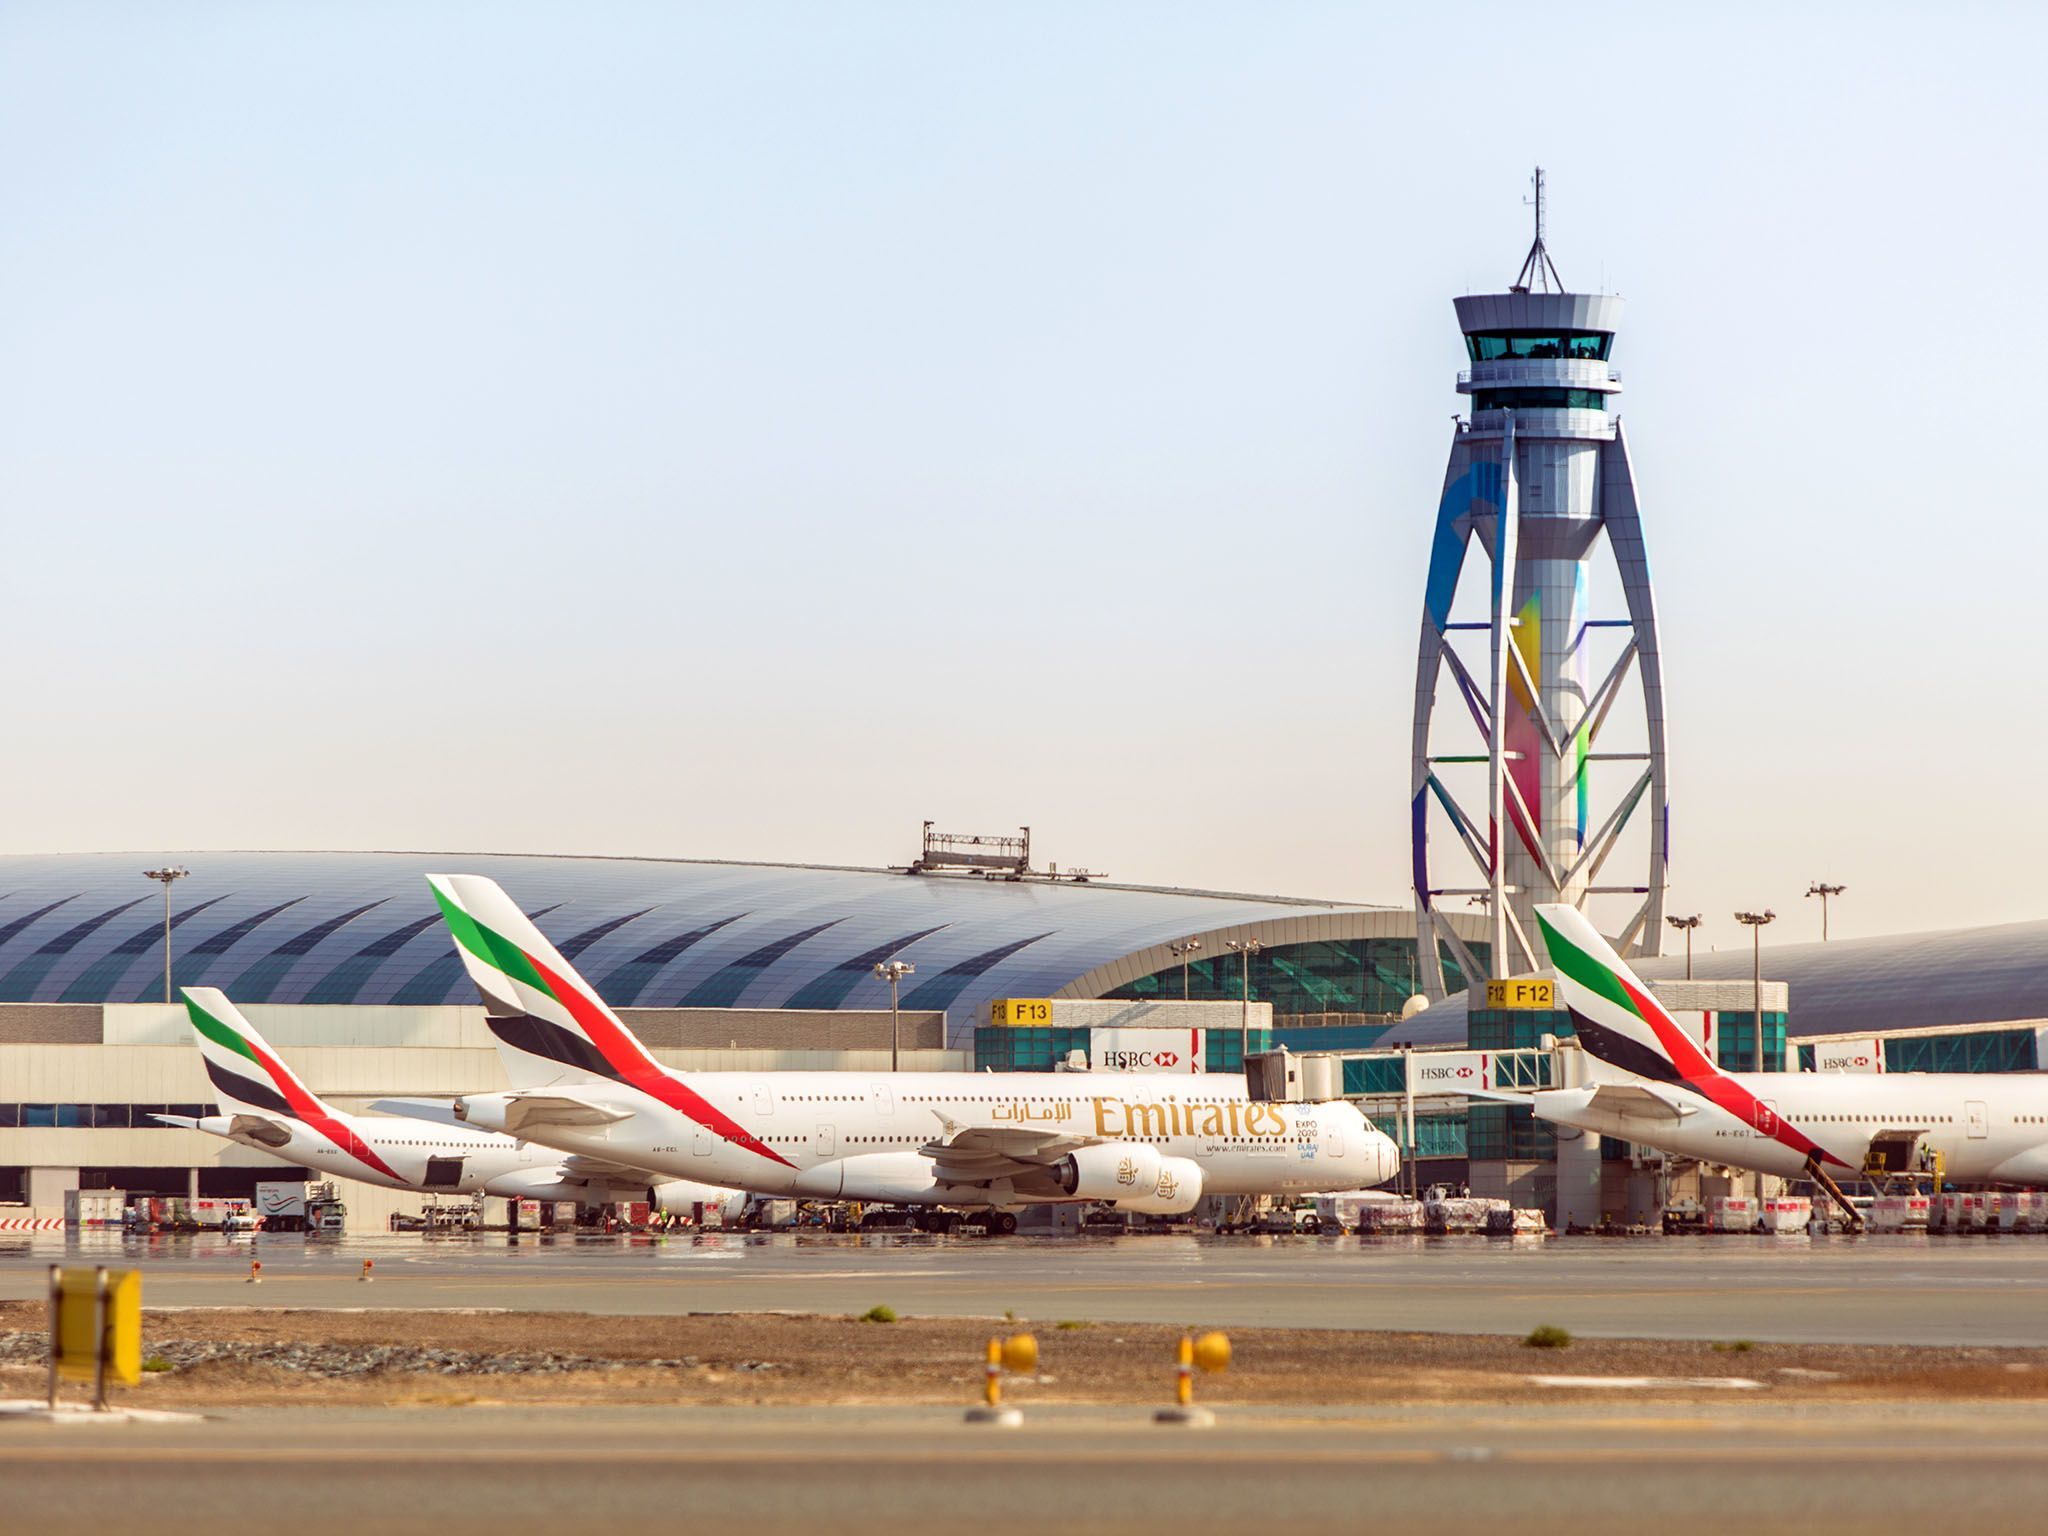 Dubai: The air traffic control tower. This image is from Ultimate Airport Dubai. [Photo of the day - October 2015]